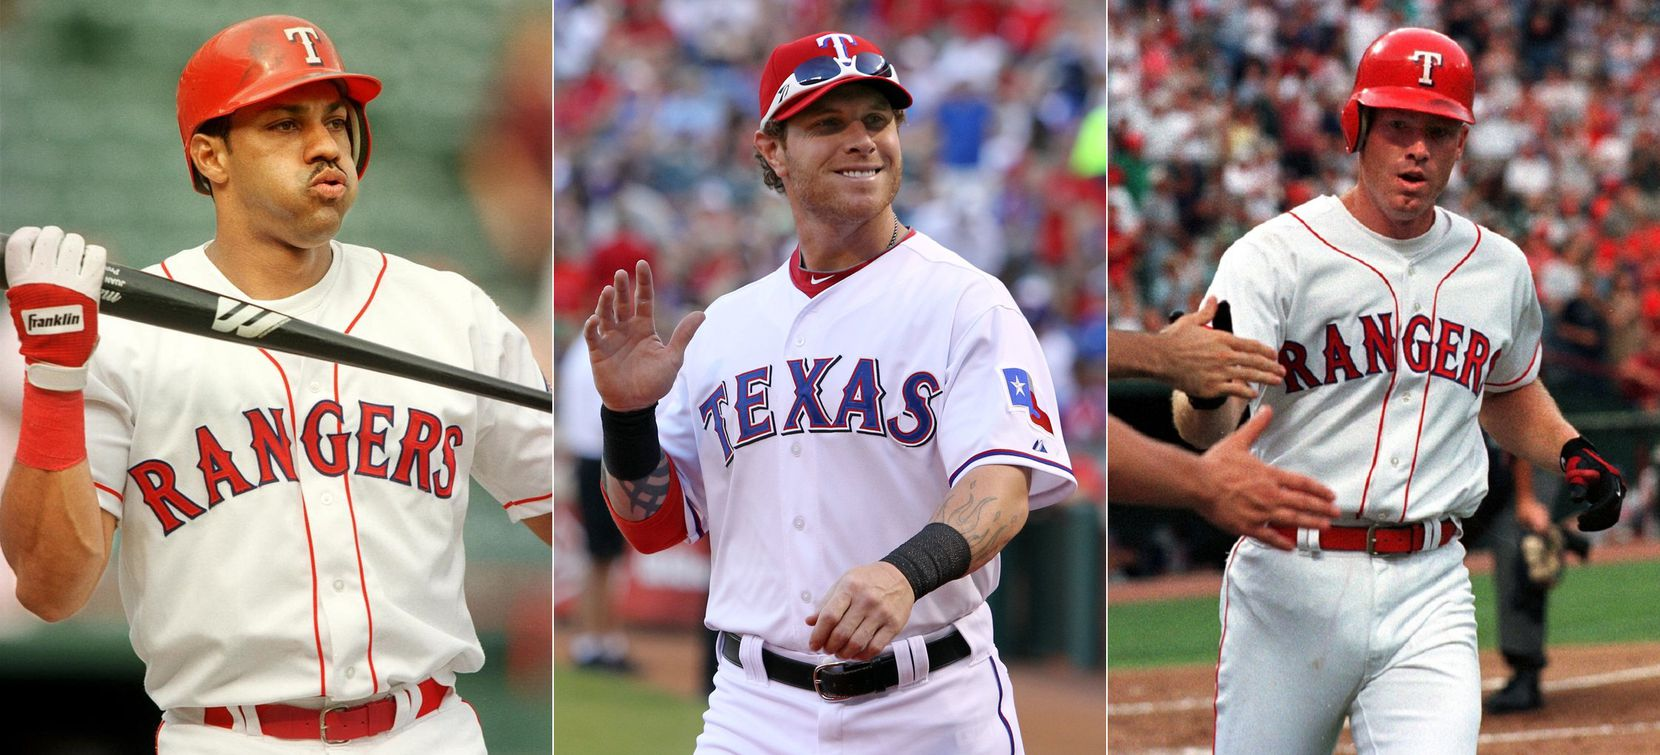 Rangers outfielders through the Globe Life Park years, (from L to R) Juan Gonzalez, Josh Hamilton, and Rusty Greer